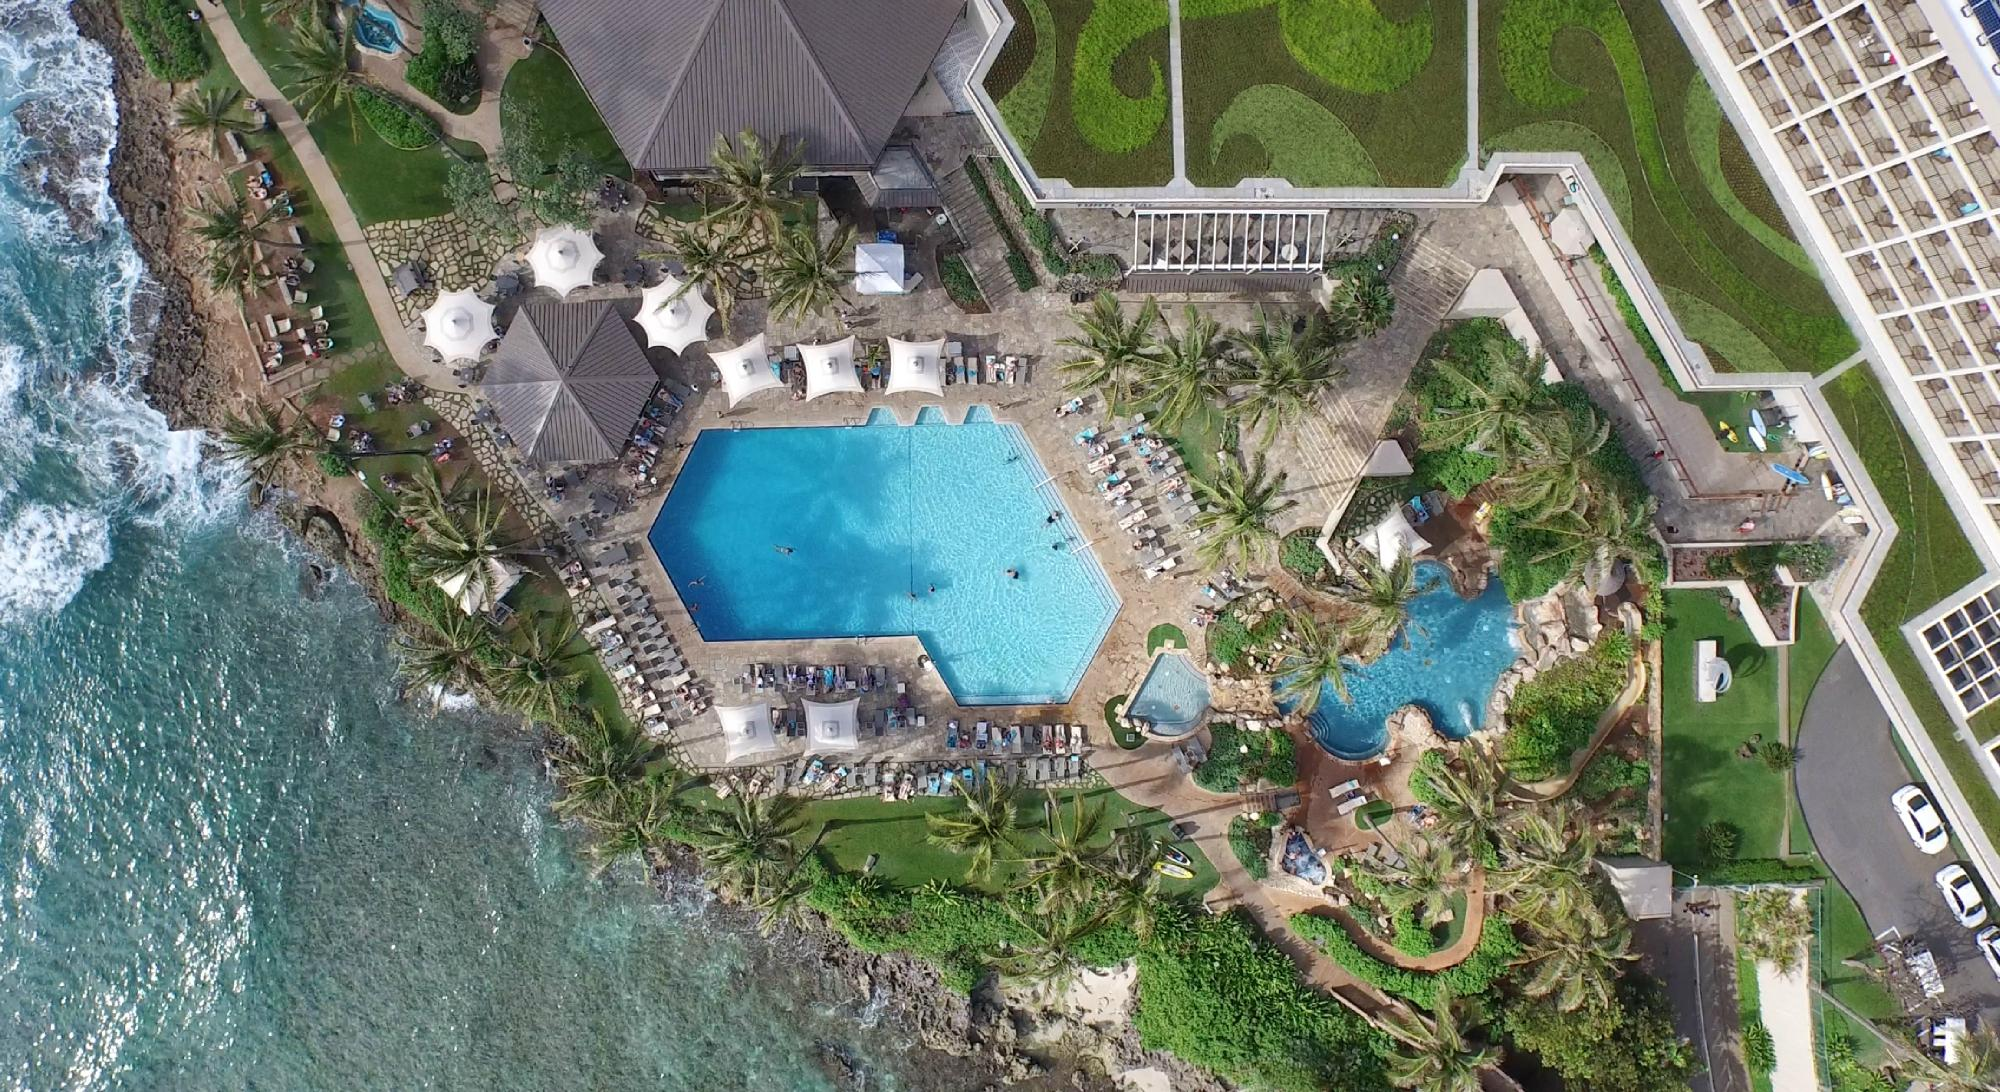 Turtle bay resort in oahu, hawaii - all inclusive usa